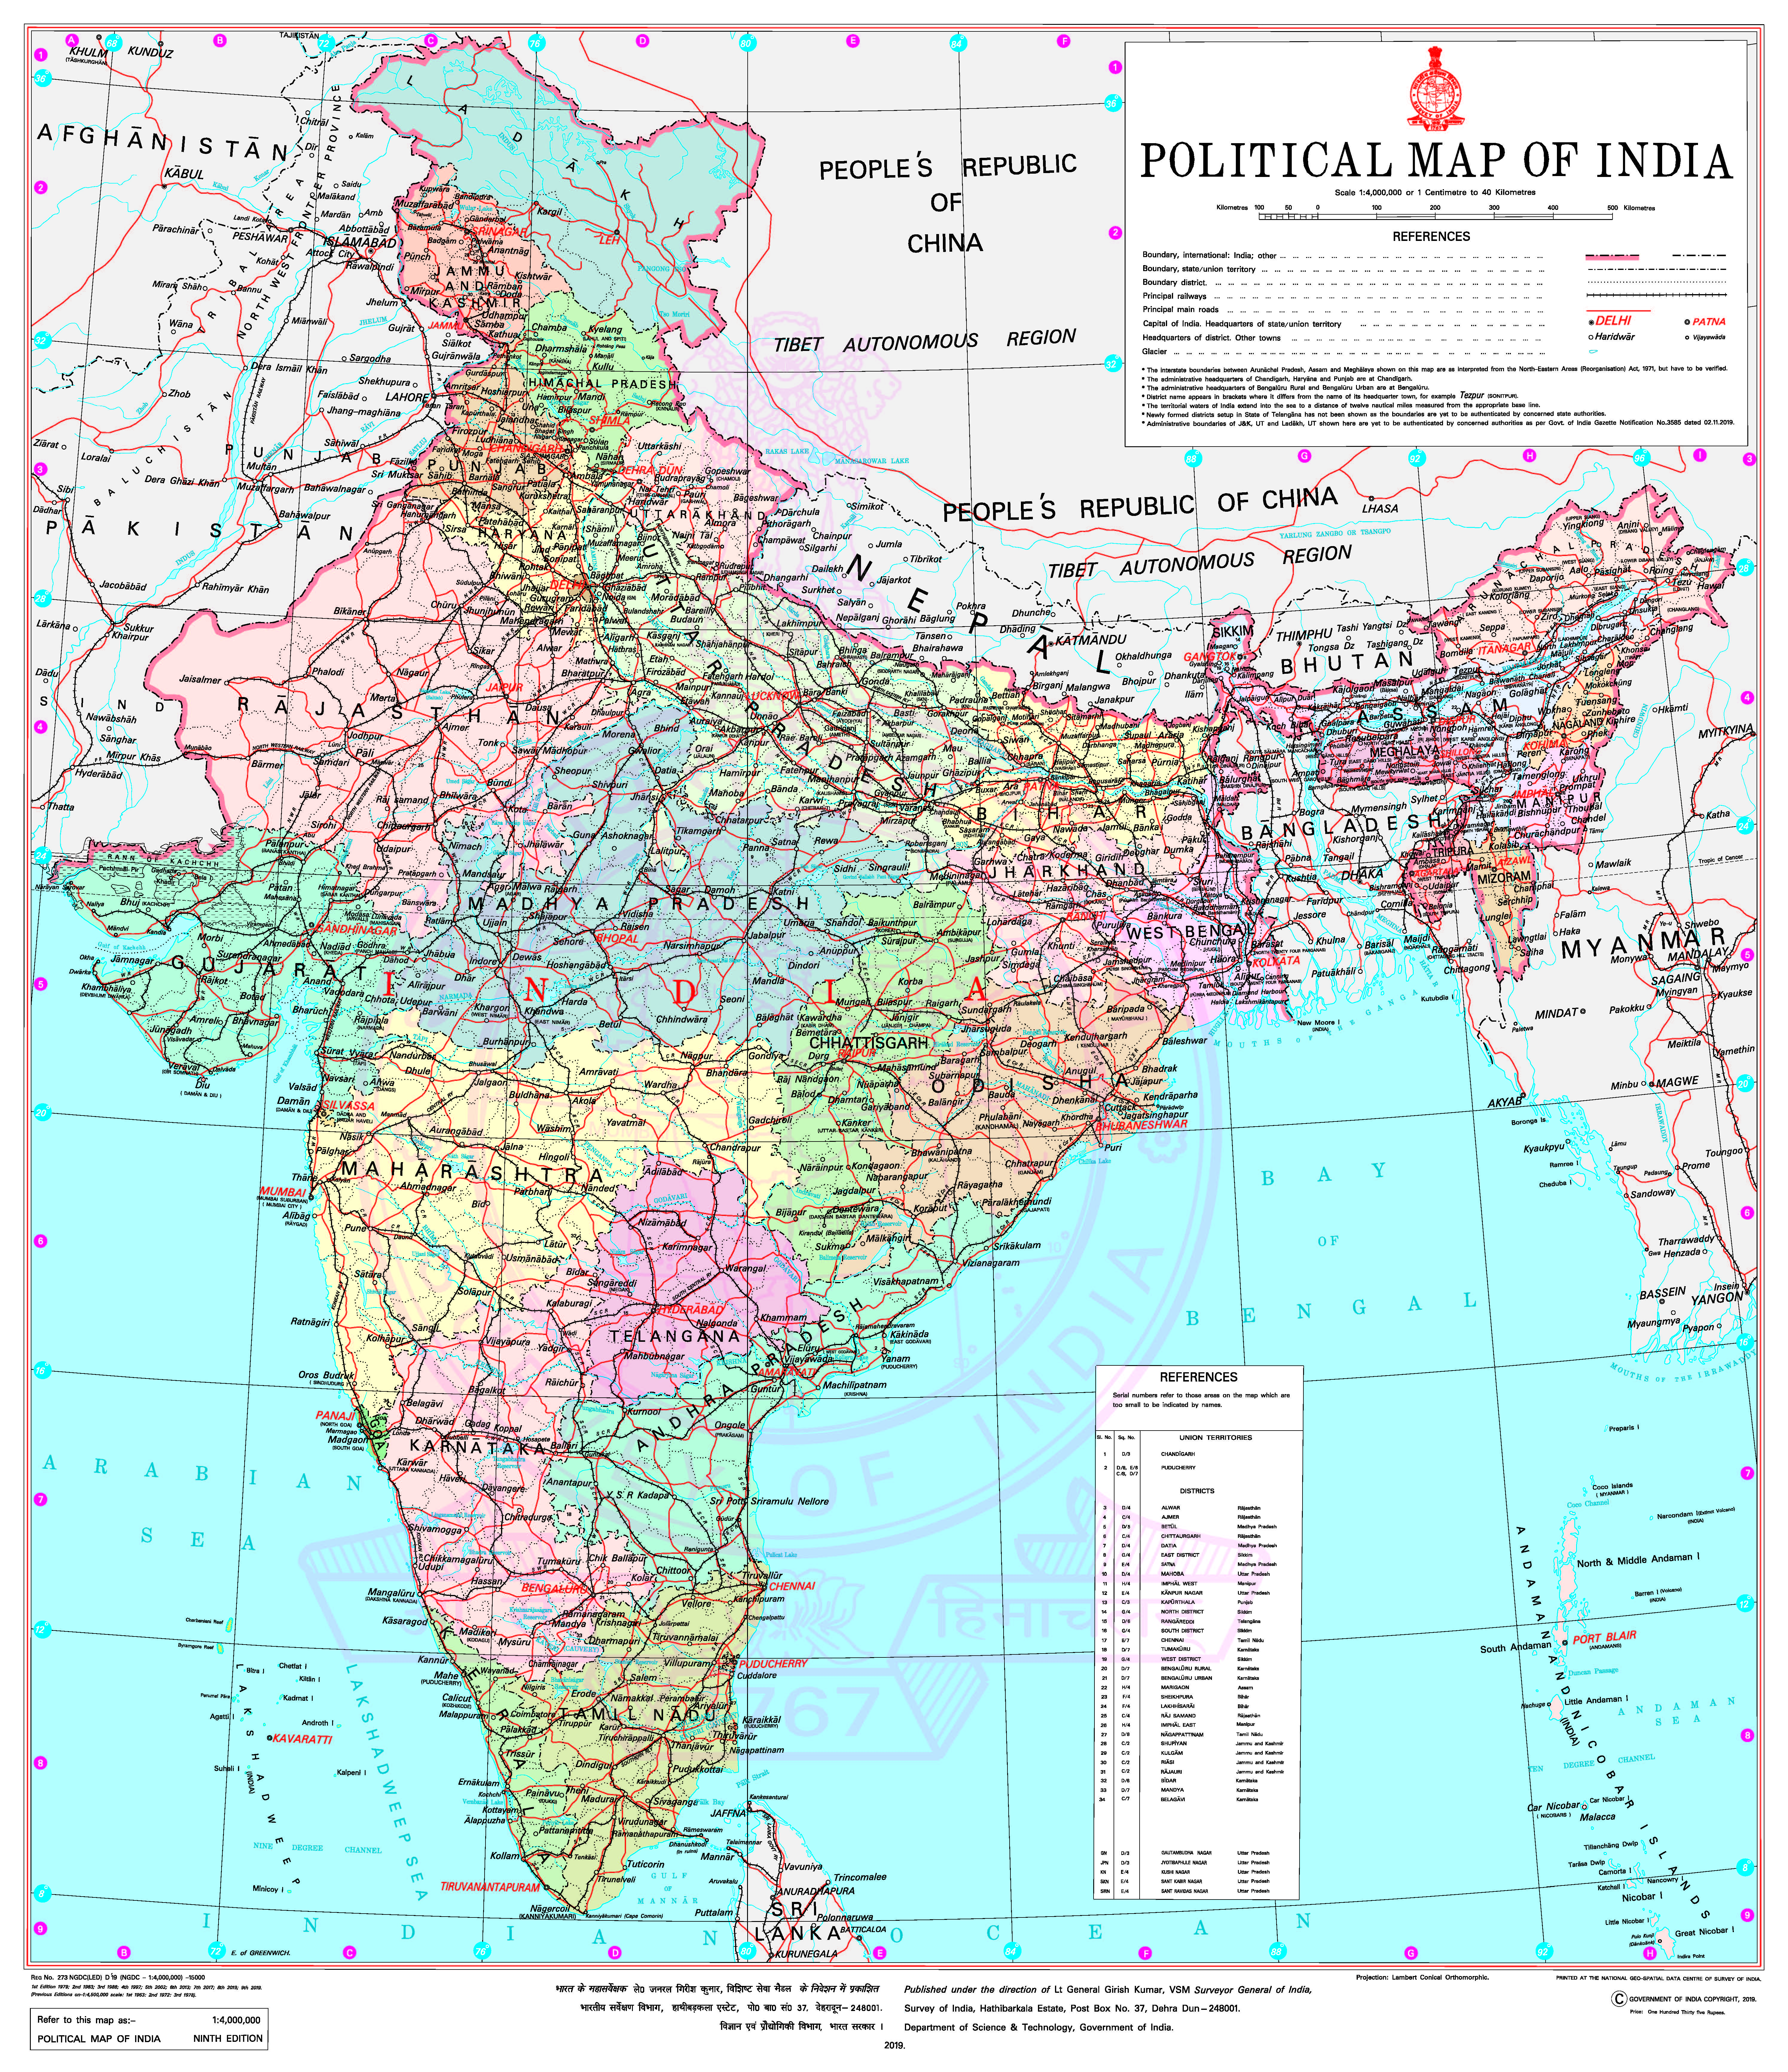 recent map of india 2020 Political Map Of India Survey Of India recent map of india 2020